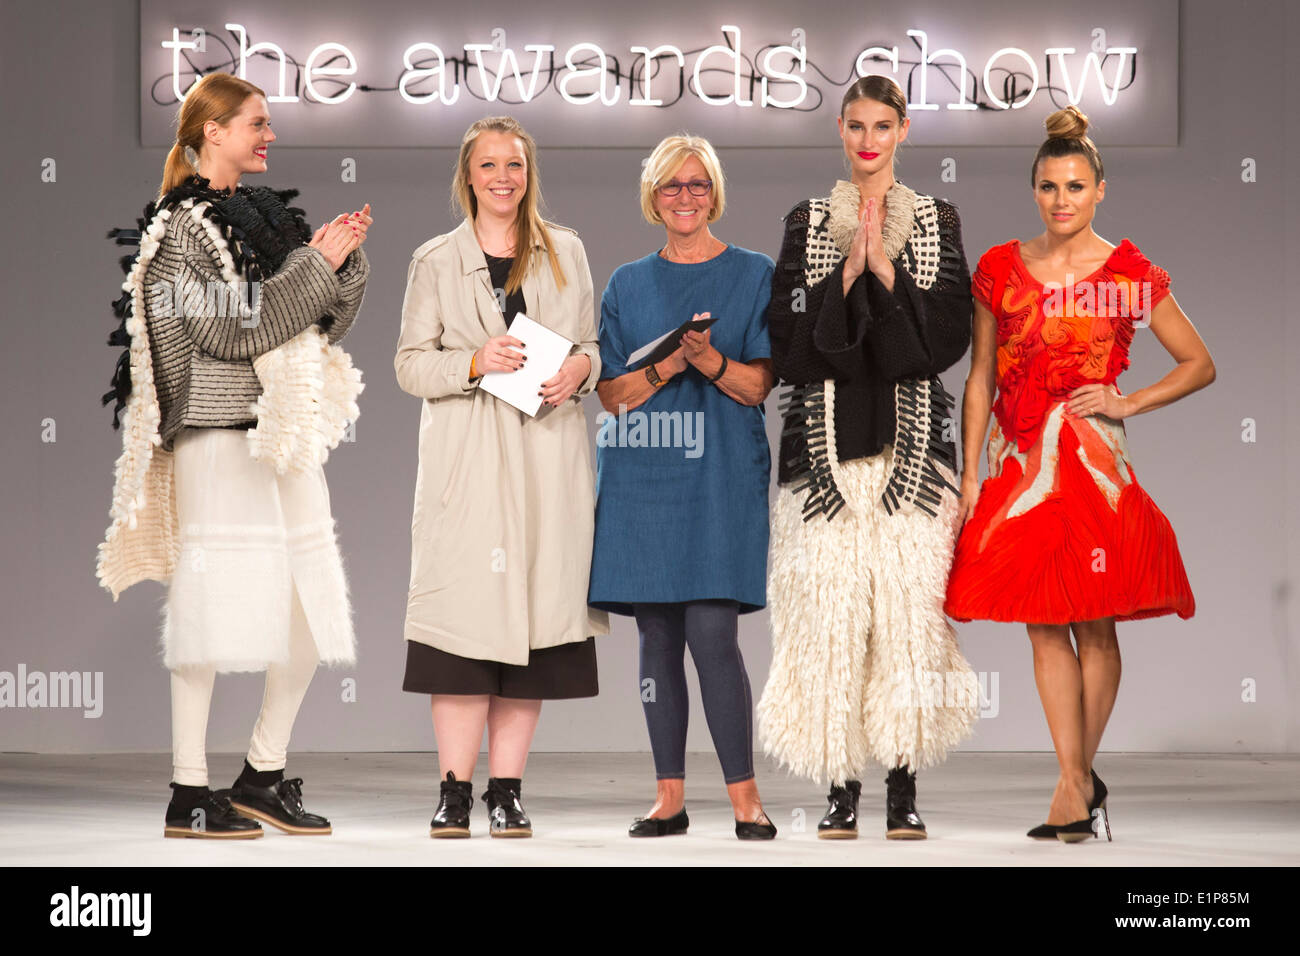 Rebecca Swann receives the Stuart Peters Knitwear Award from Erica Peters, Graduate Fashion Week 2014 Awards Show - Stock Image